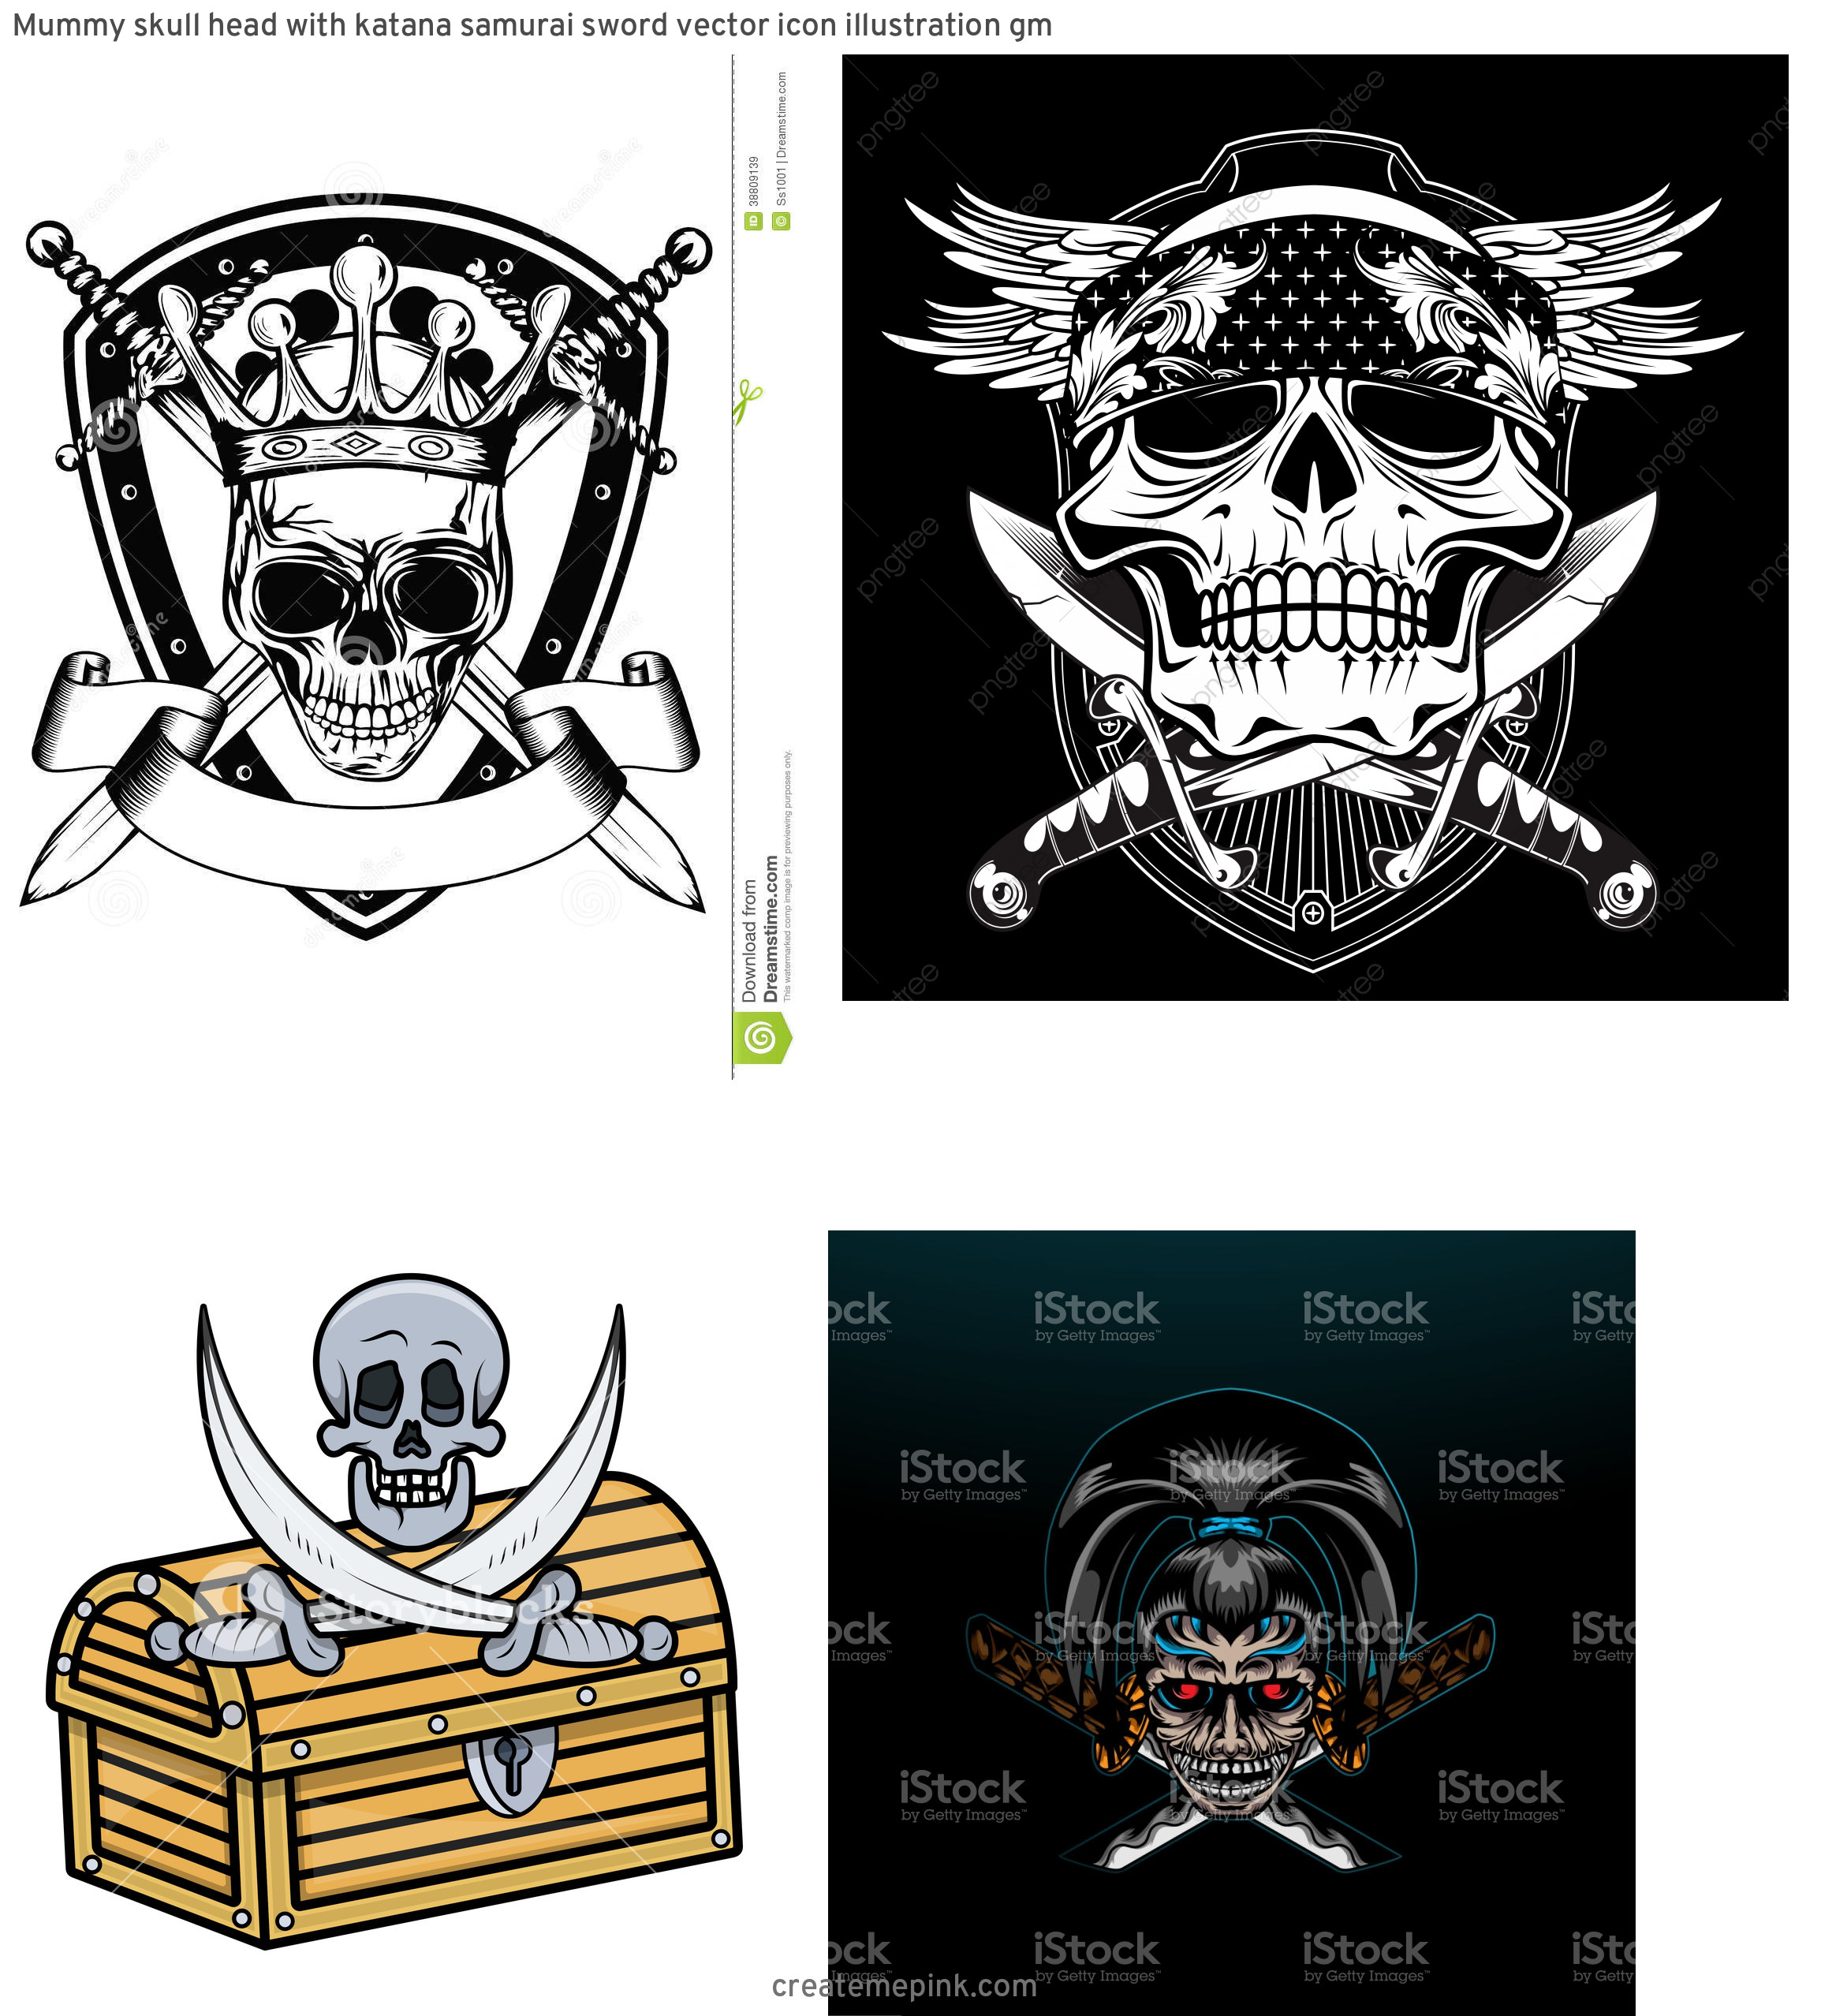 Skull Sword Vector: Mummy Skull Head With Katana Samurai Sword Vector Icon Illustration Gm